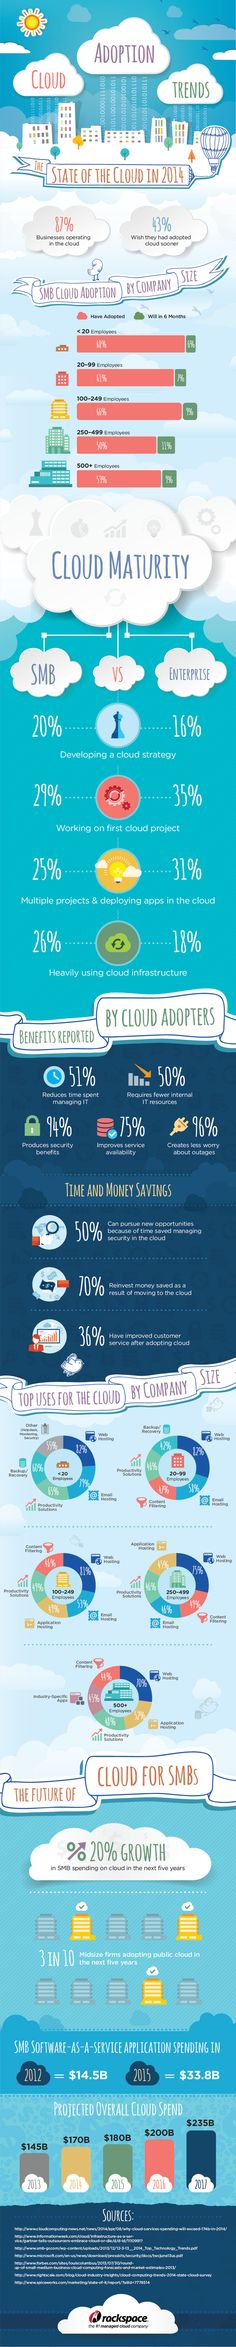 Infographic: SMB Cloud Adoption Trends in 2014 | PCWorld If you use Dropbox or OneDrive or Adobe CC among hundreds others, you are a cloud user.